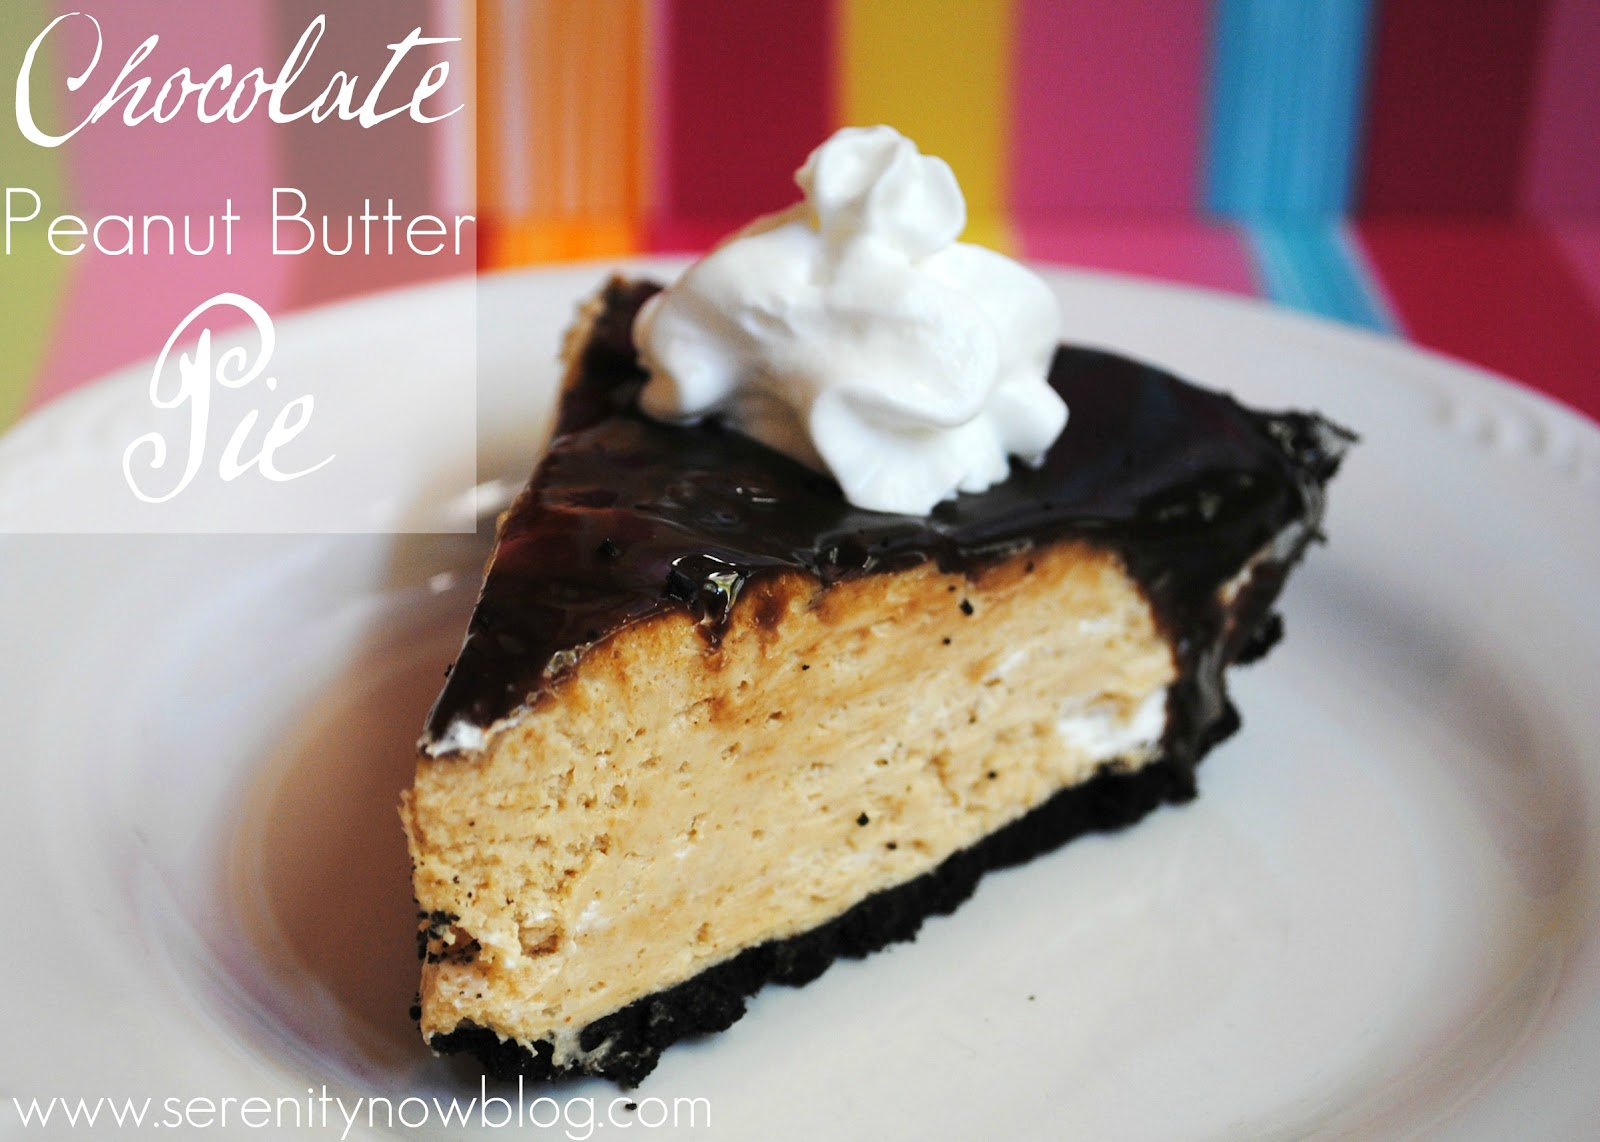 Serenity Now: Chocolate Peanut Butter Pie